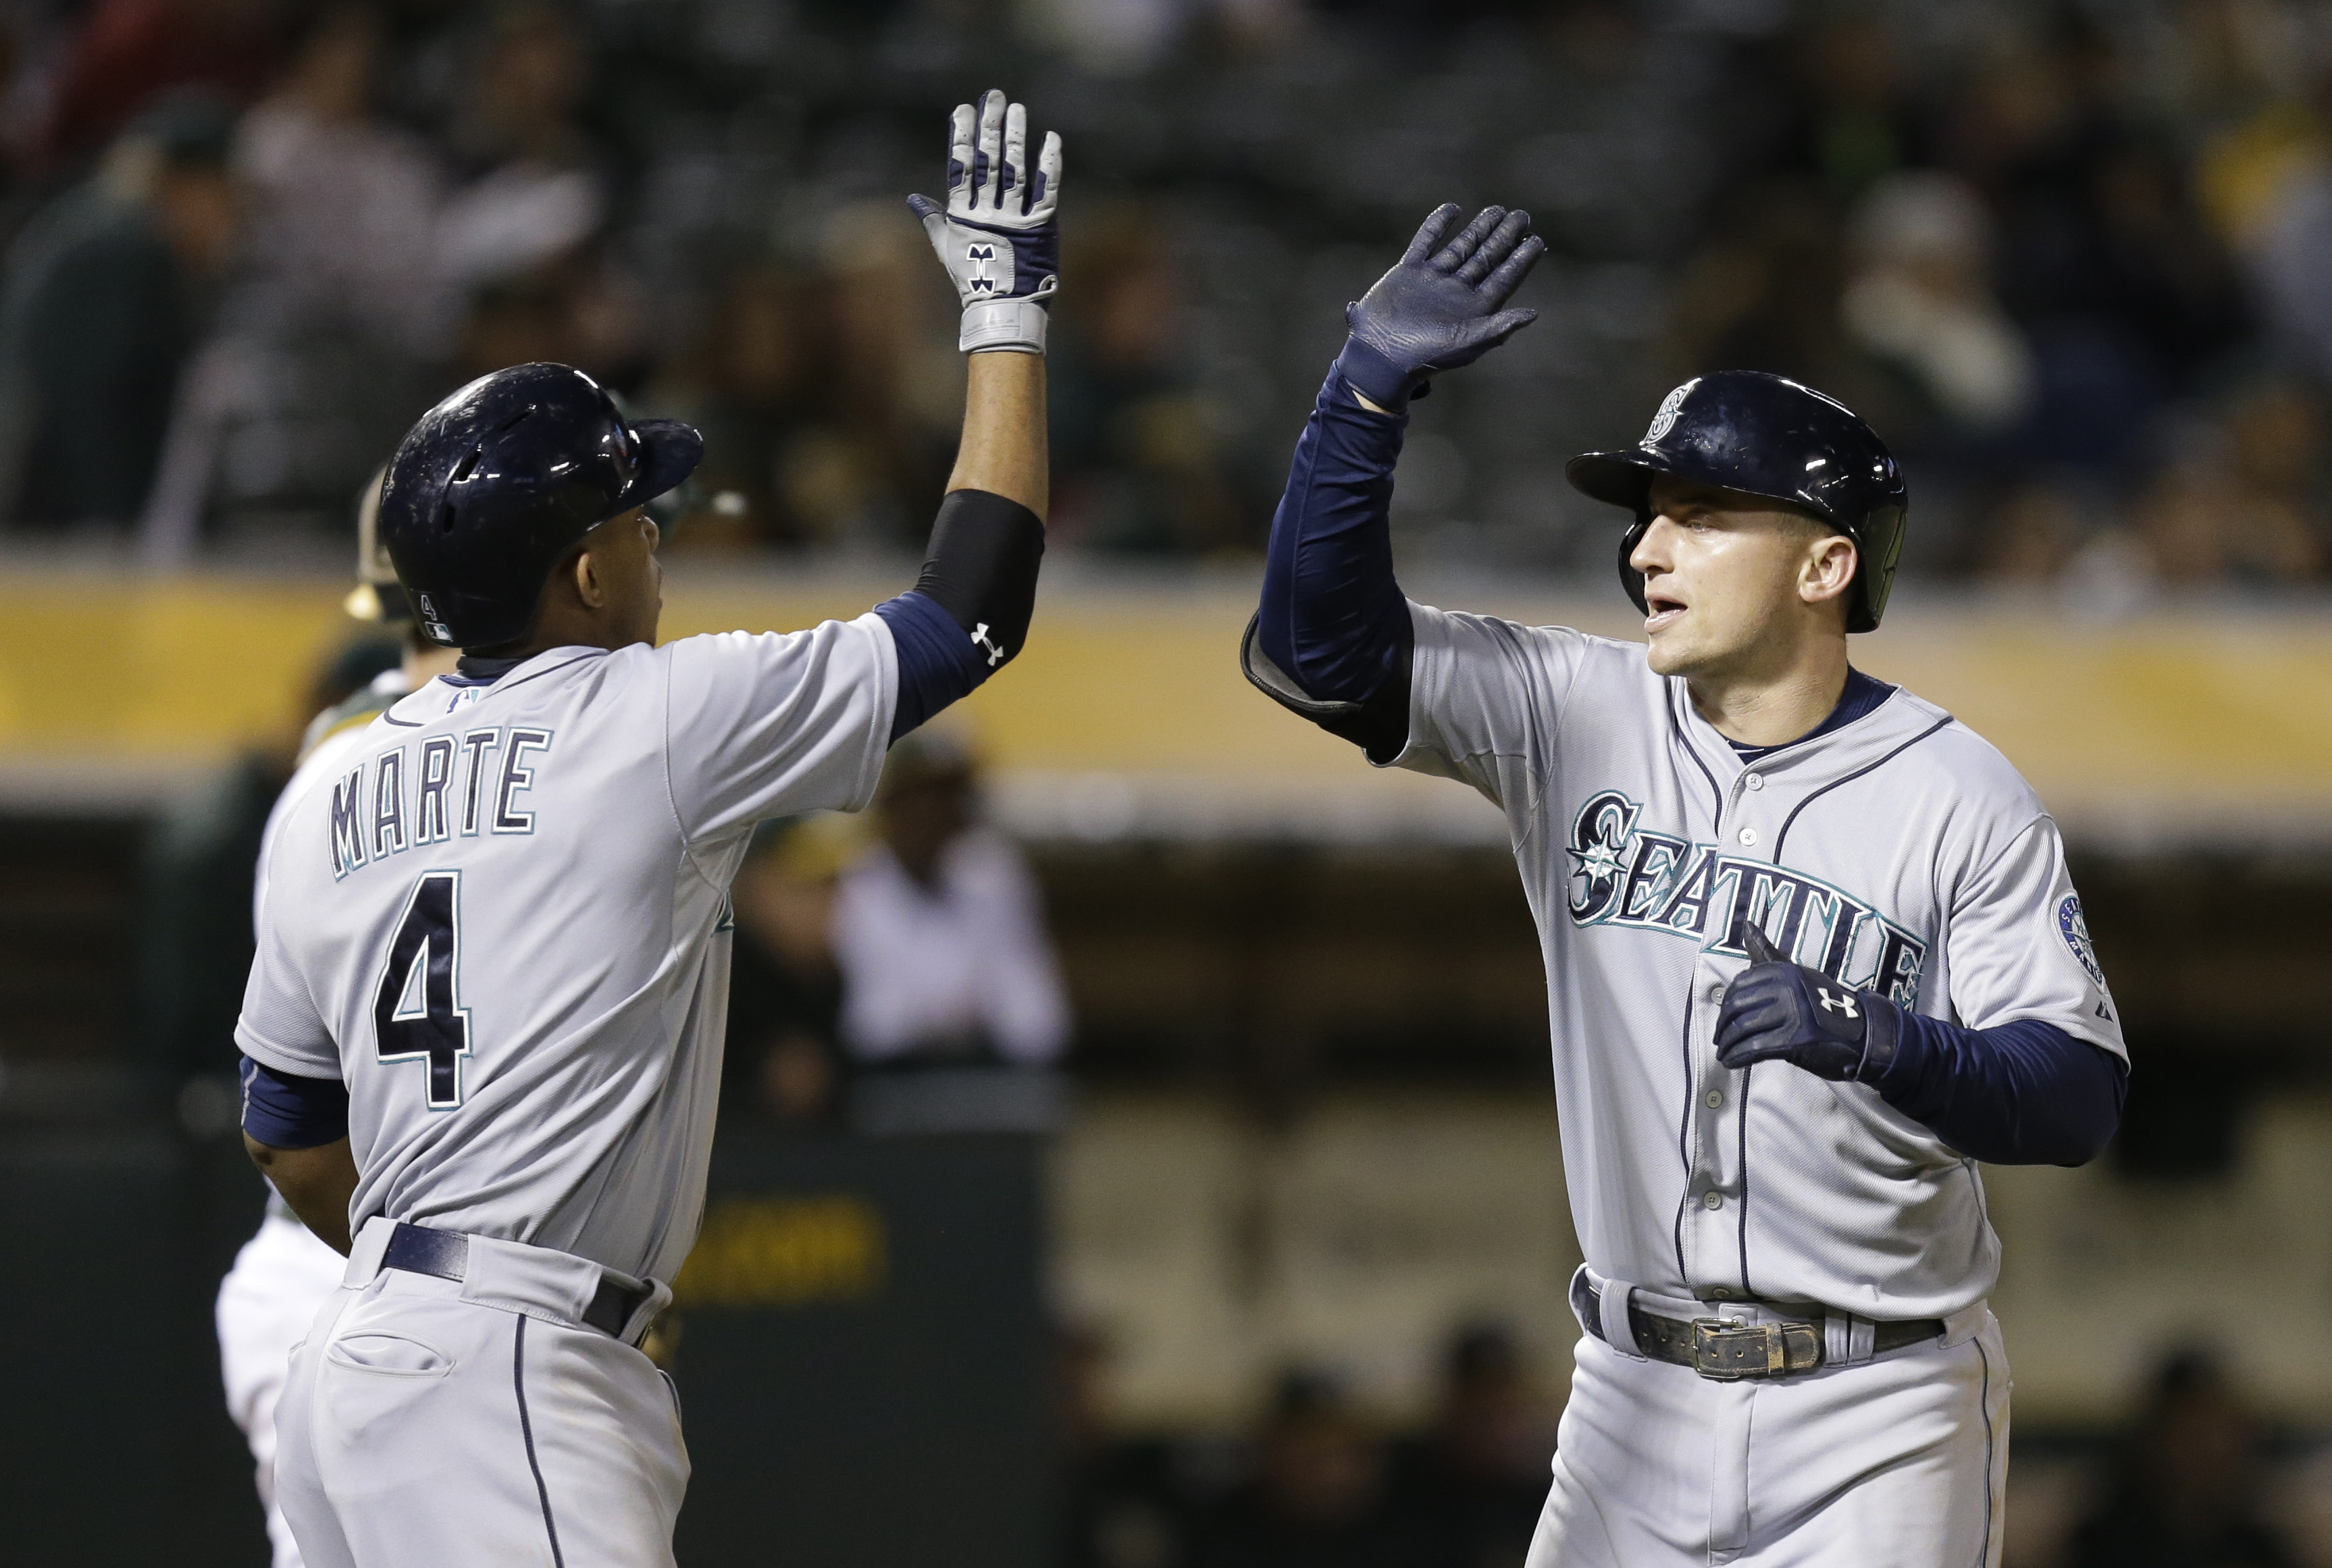 Seattle Mariners' Kyle Seager, right, celebrates with Ketel Marte (4) after hitting a two-run home run off Oakland Athletics' Drew Pomeranz in the ninth inning of a baseball game Friday, Sept. 4, 2015, in Oakland, Calif. (AP Photo/Ben Margot)